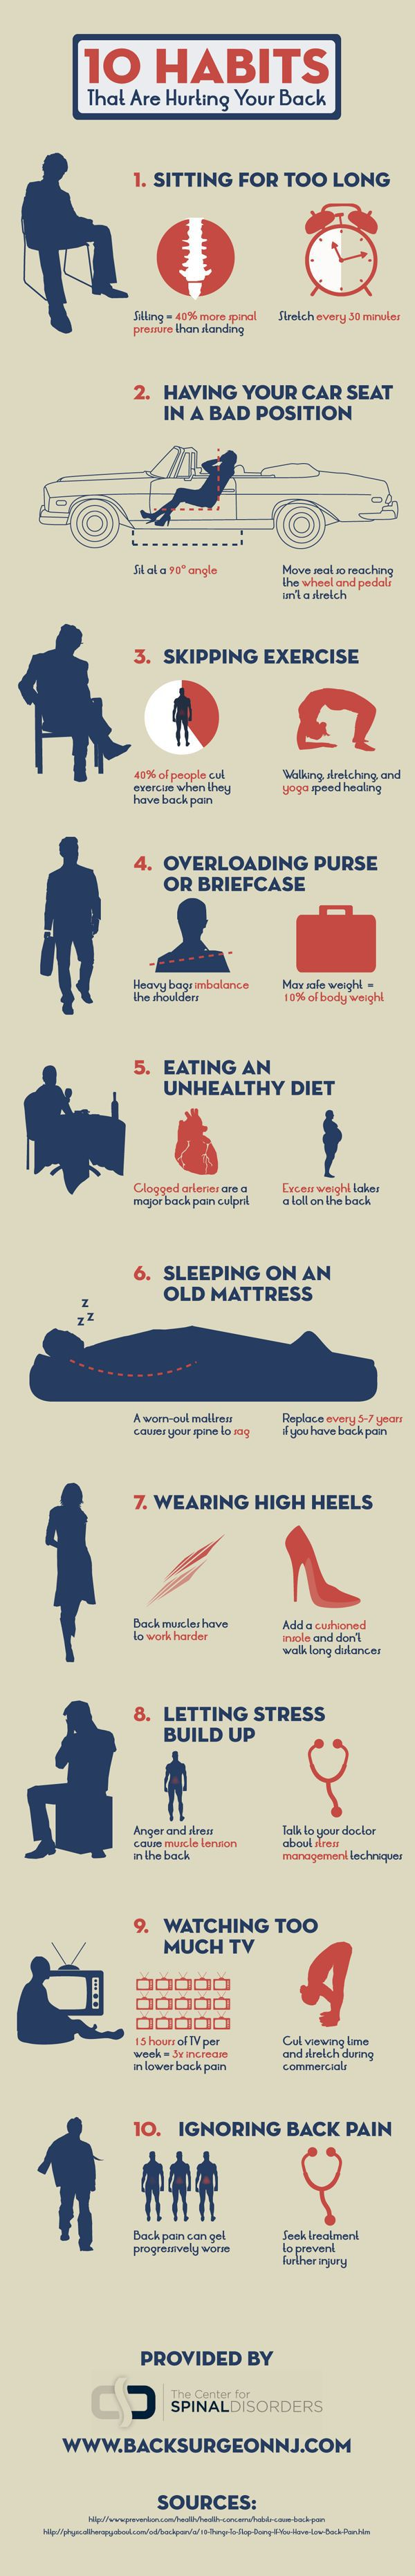 10 Habits Of Yours That Affect And Injure Your Back - Infographic